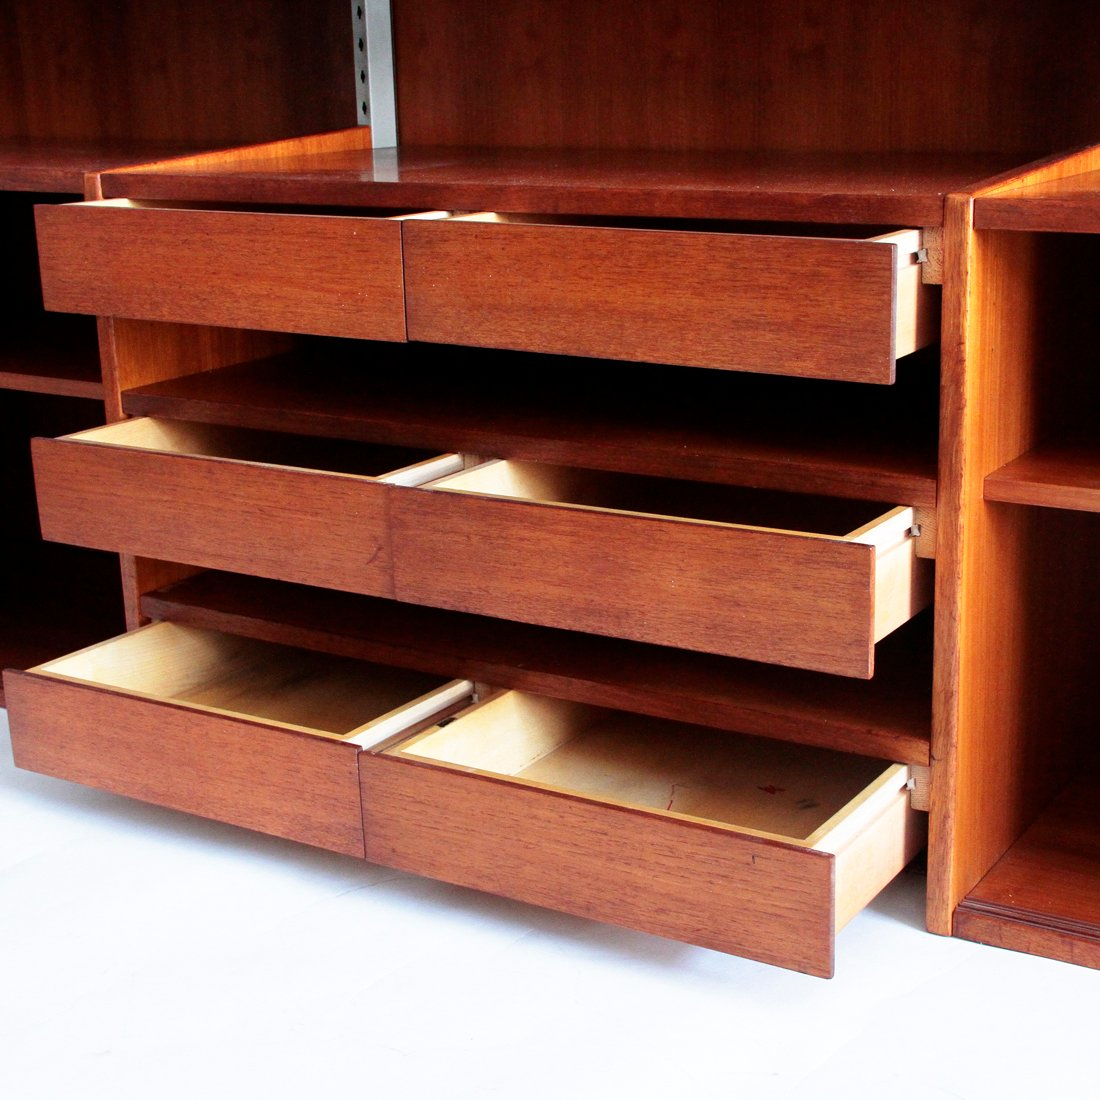 Marvelous photograph of Italian Mid Century Teak Wall Unit 1960s for sale at Pamono with #A54D26 color and 1100x1100 pixels